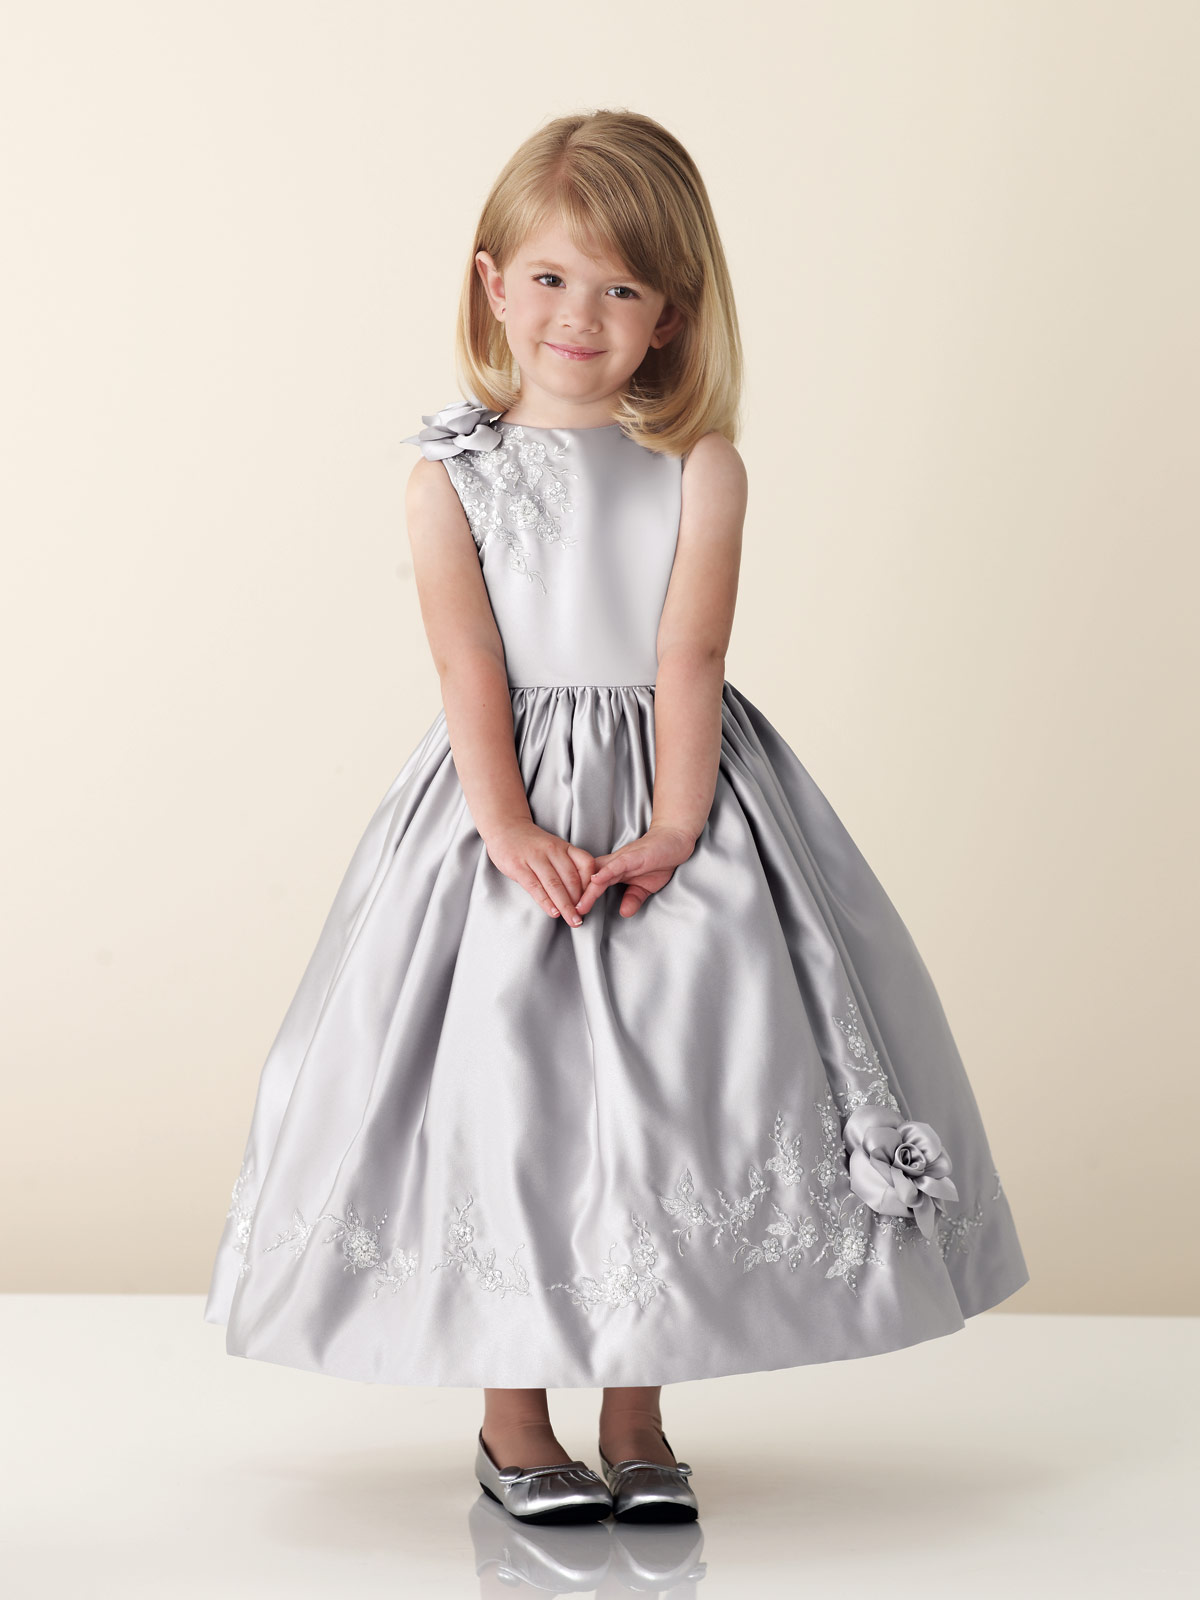 Ideas evening wedding dresses for junior child photos for Wedding dresses for child